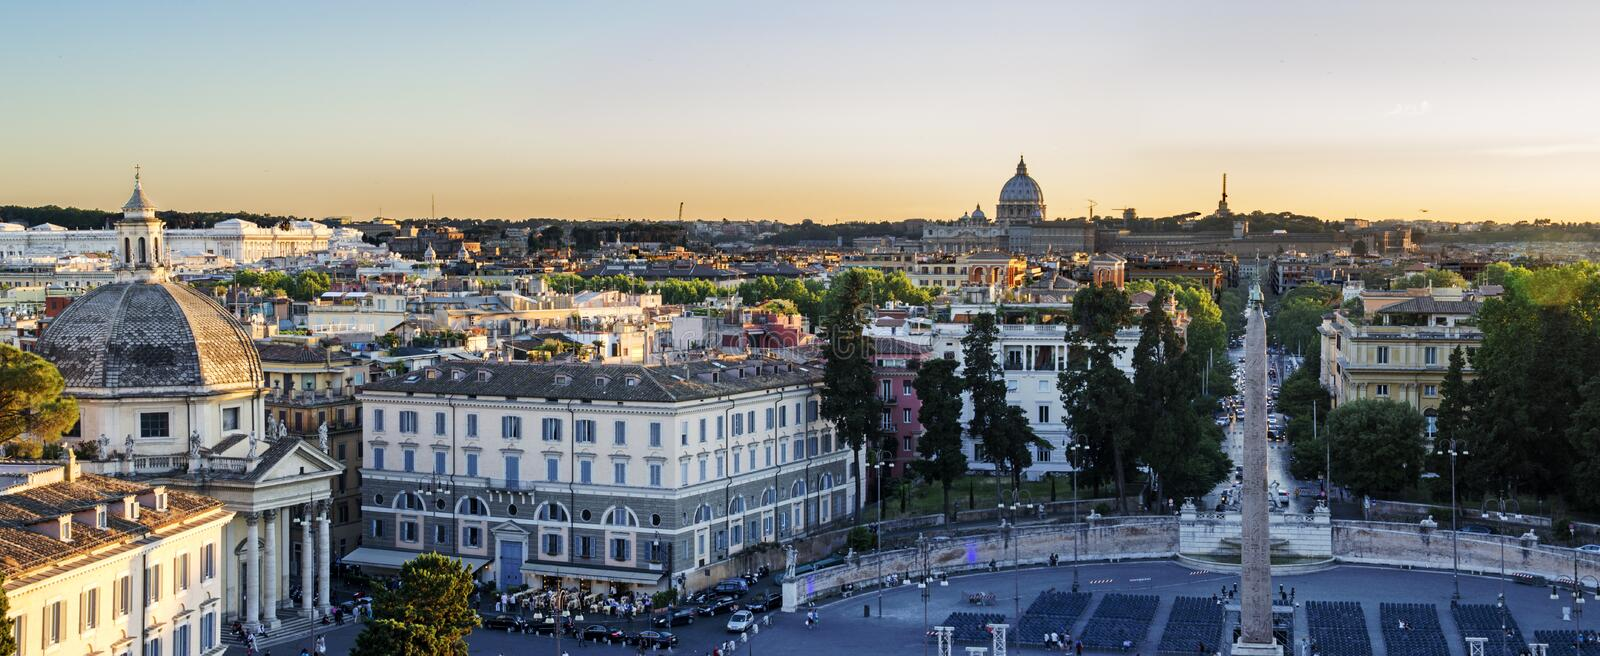 Piazza Del Popolo at sunset stock photos